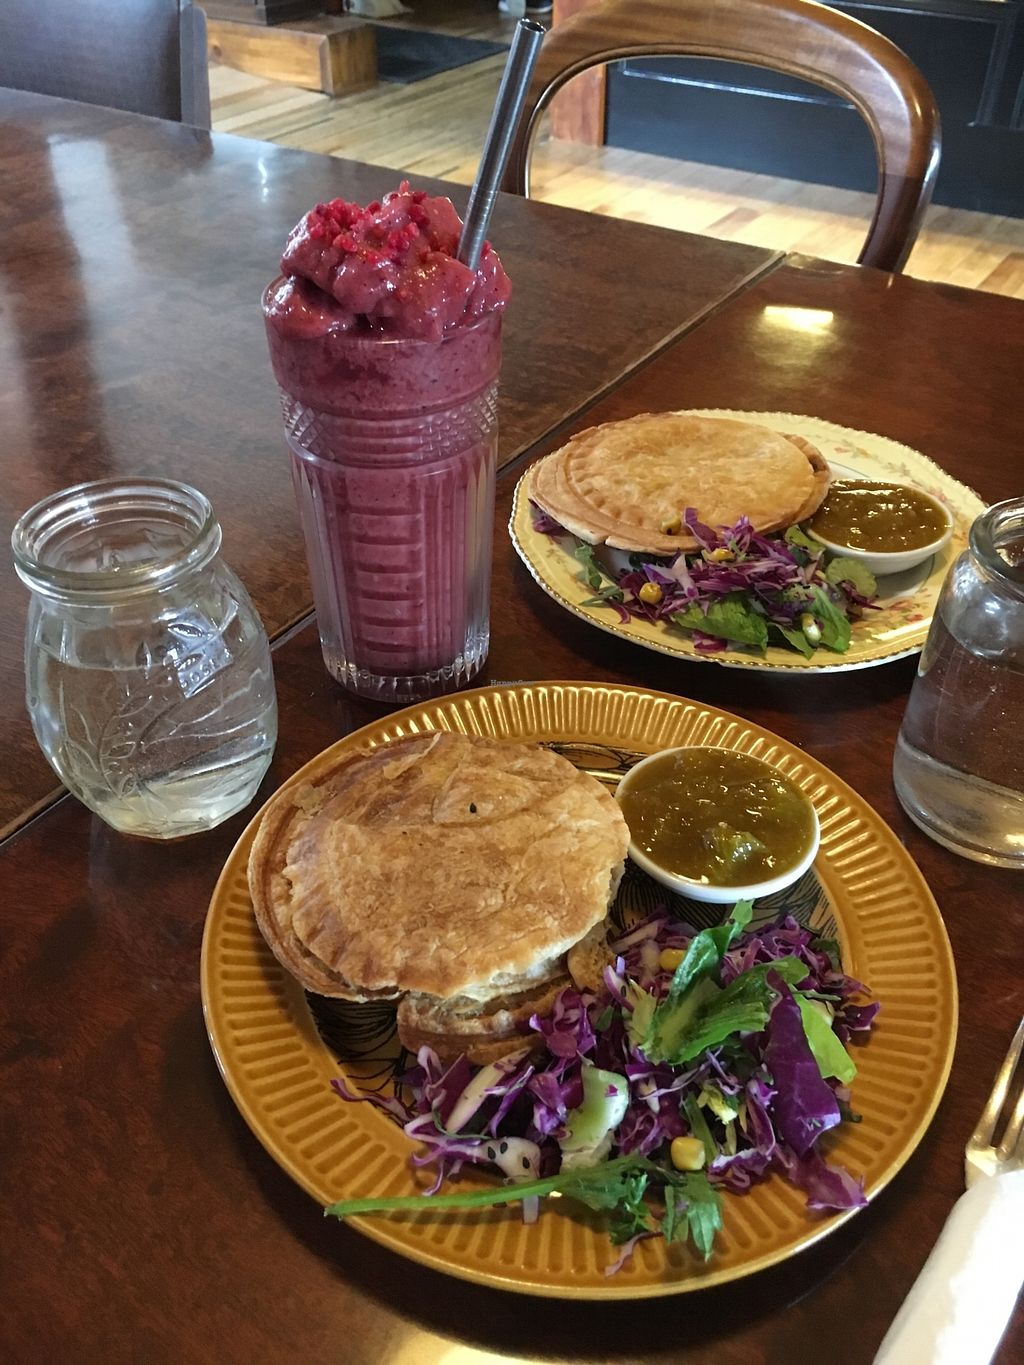 "Photo of Portershed  by <a href=""/members/profile/sousuneautrelentille"">sousuneautrelentille</a> <br/>Pies with salad and chutney. Oh, and a smoothie! <br/> March 7, 2018  - <a href='/contact/abuse/image/96516/367631'>Report</a>"